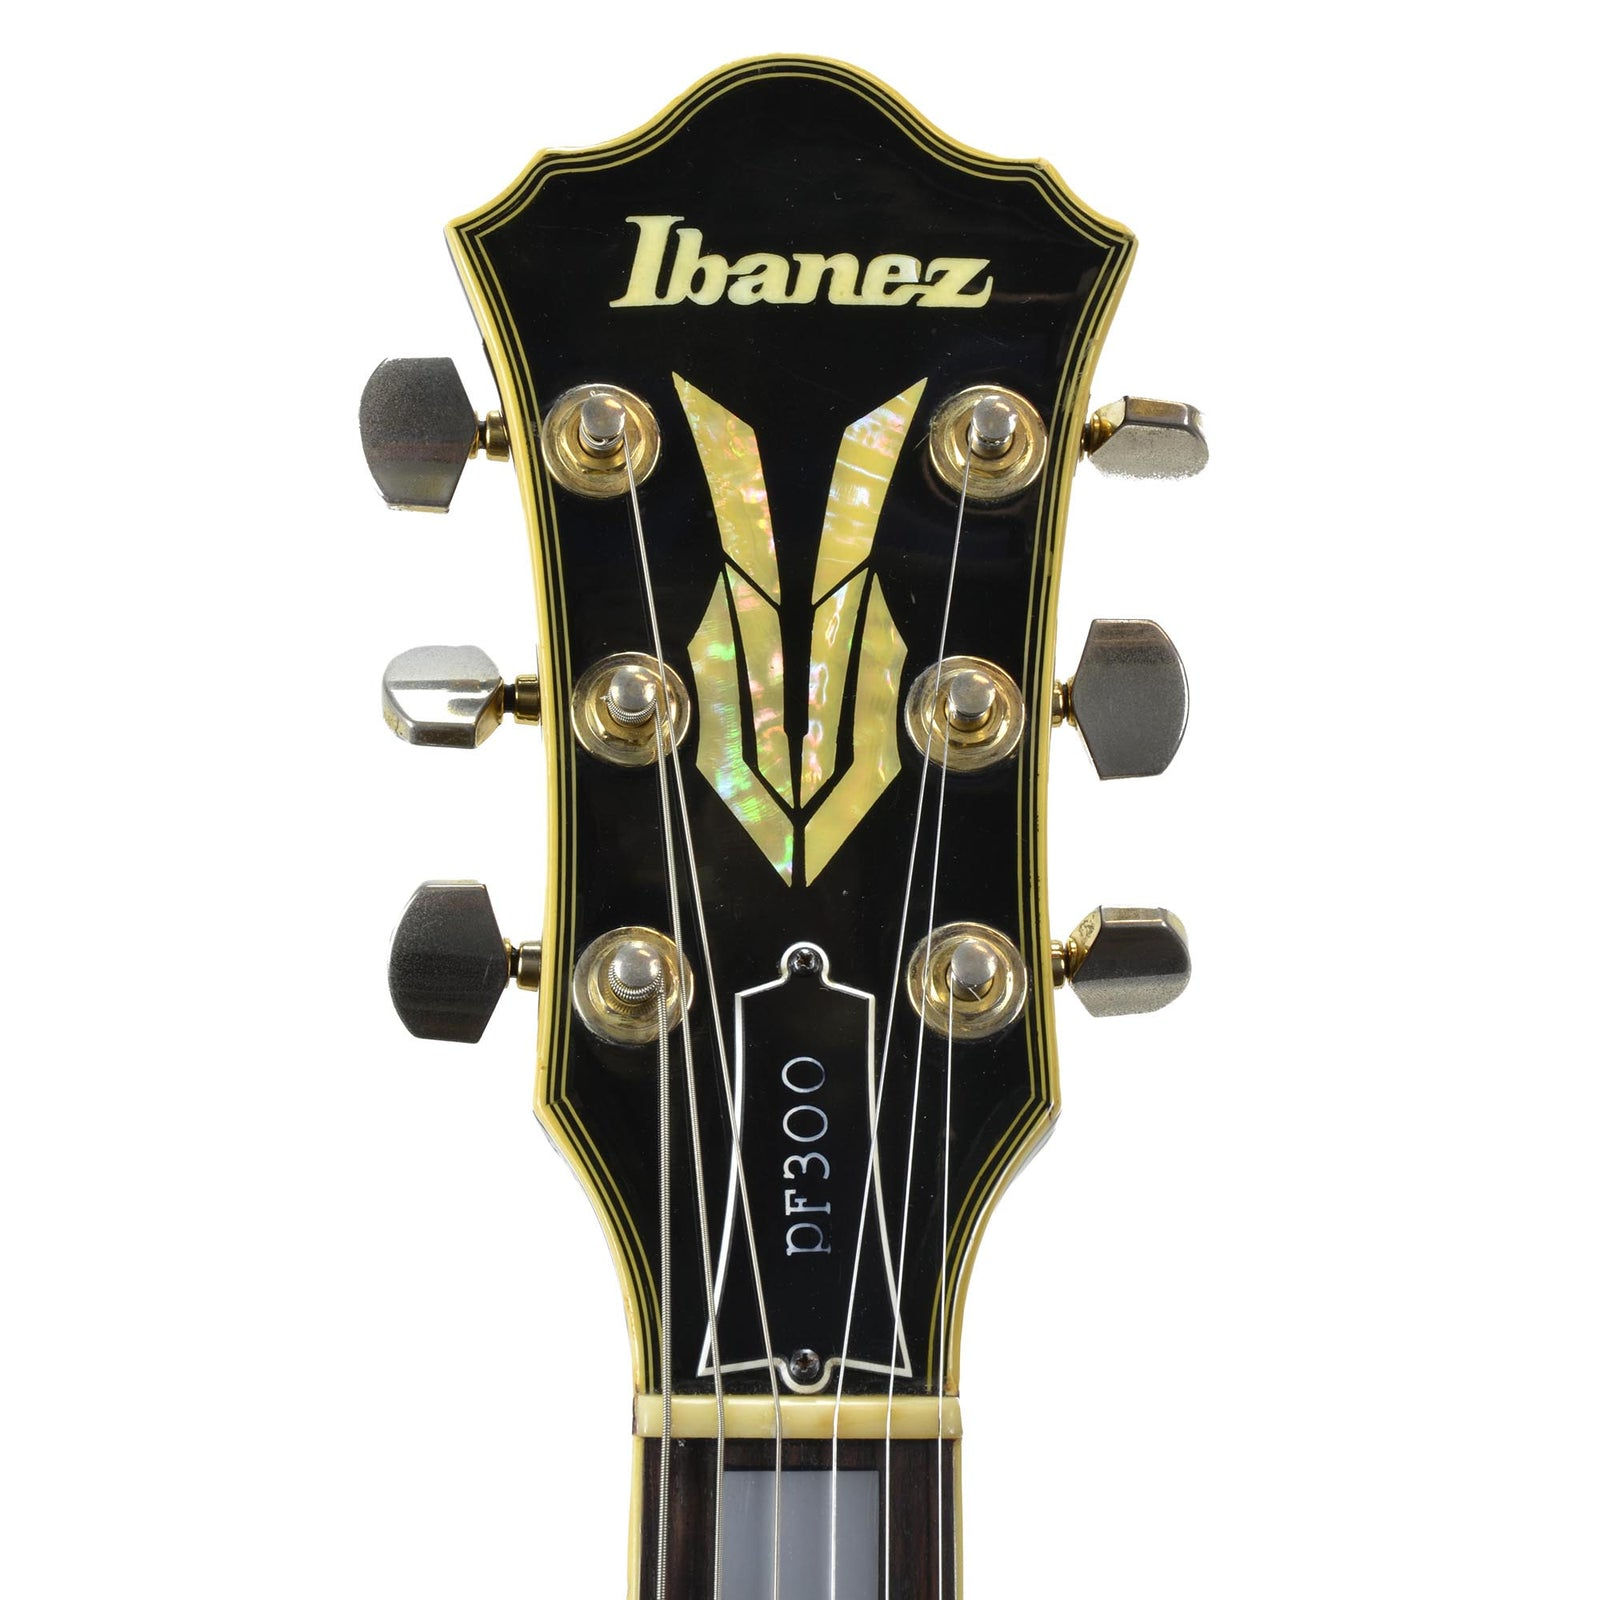 Ibanez PF-300 With Hard Case - Used